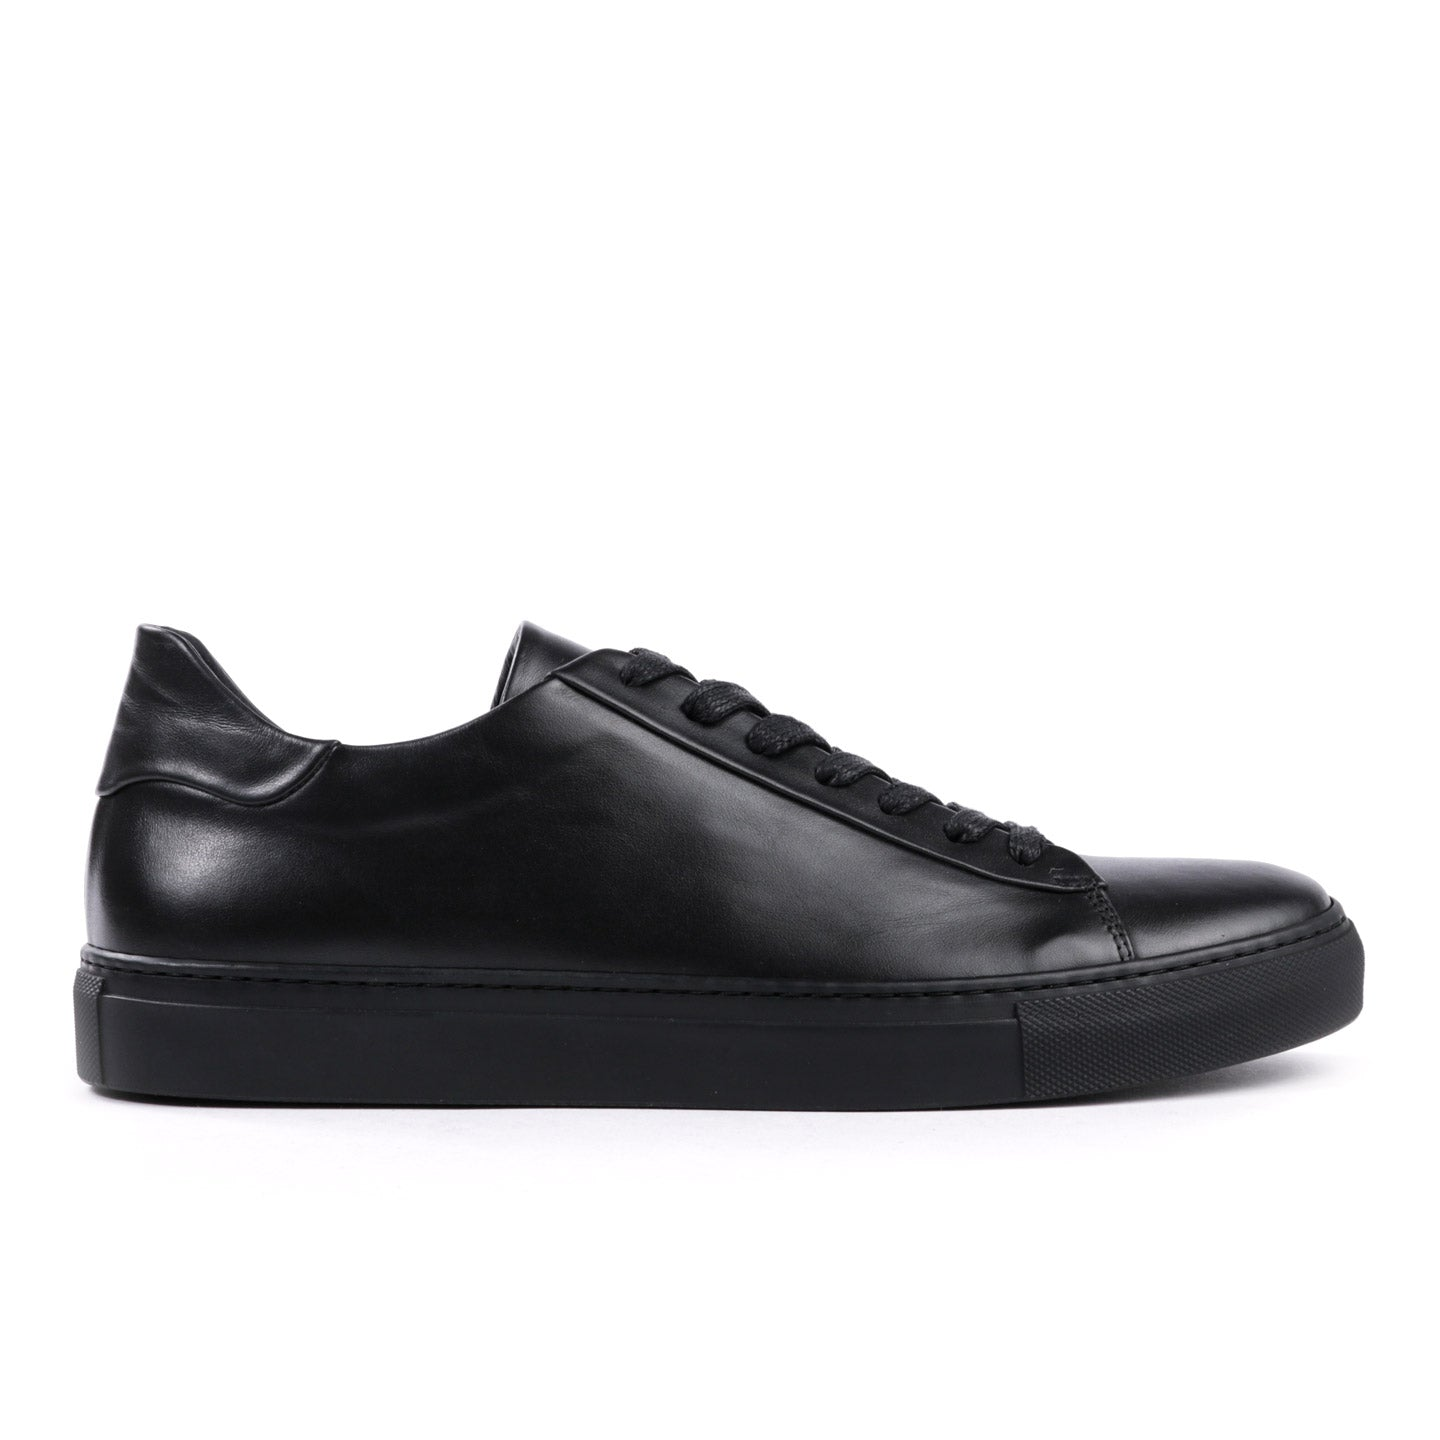 4a5ef5bb62 WINGS + HORNS COURT LOW SOFTY LEATHER BLACK / BLACK